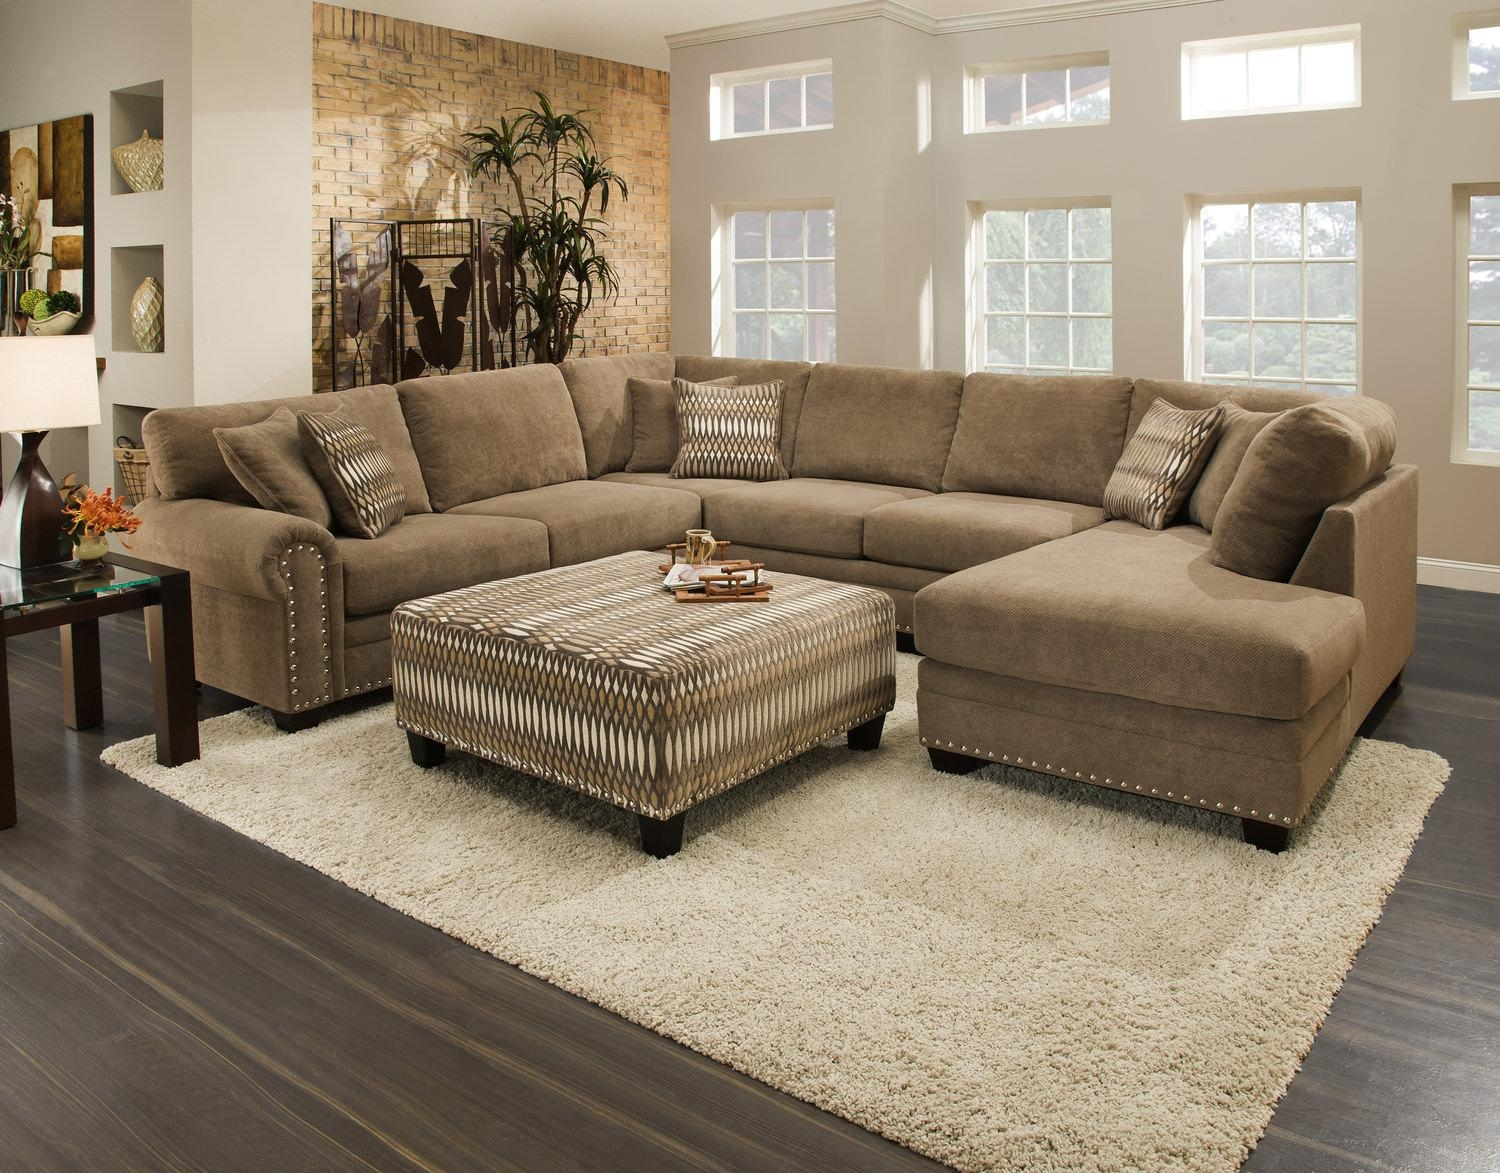 20 Inspirations Sealy Leather Sofas Sofa Ideas